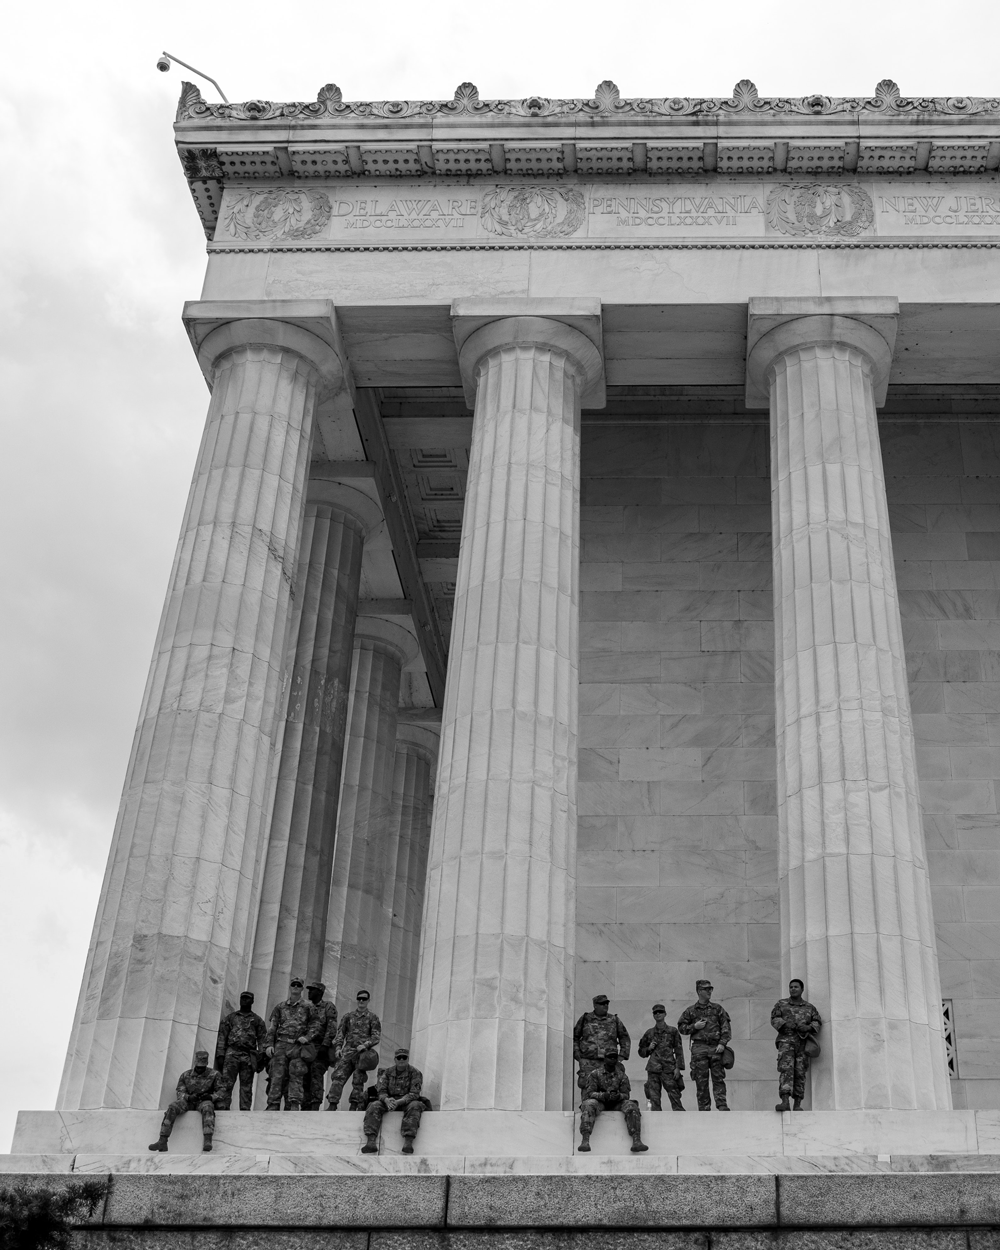 National Guard on the steps of the Lincoln Memorial at a Black Lives Matter protest